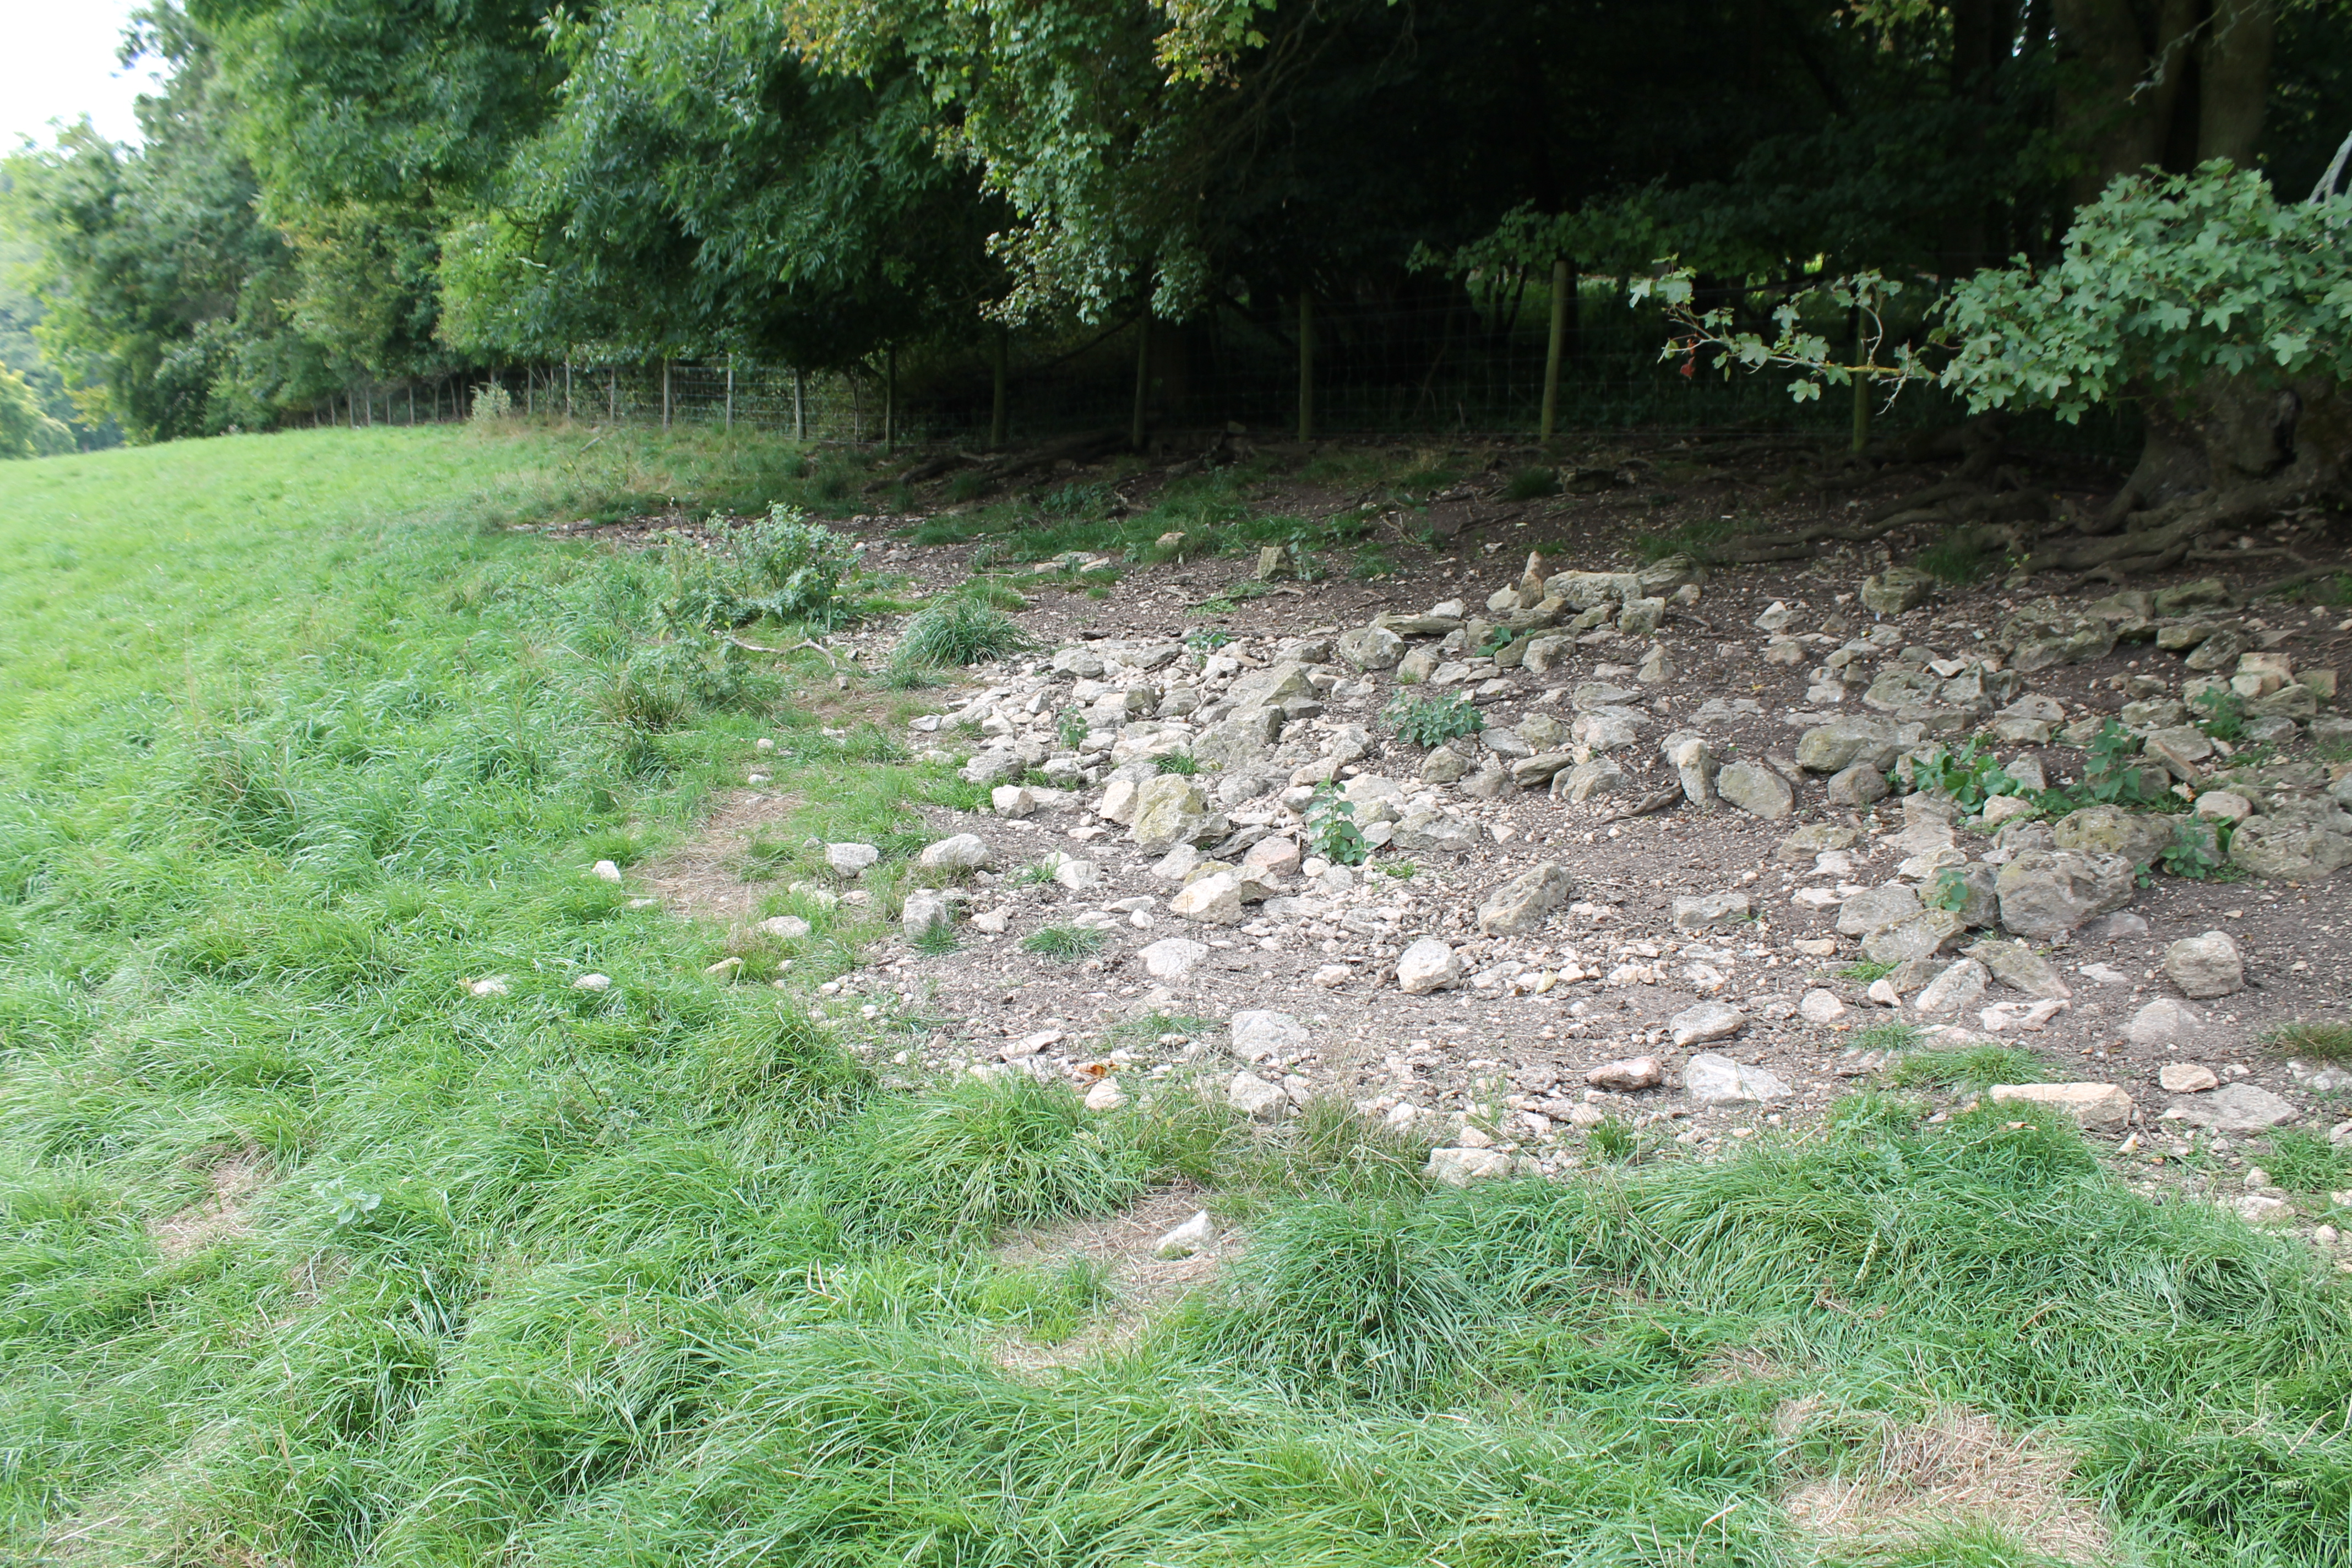 The spread of rubble against the field edge above the valley floor. Here glass, nails, lead, coins and Roman pottery of 2nd-4th century were found.